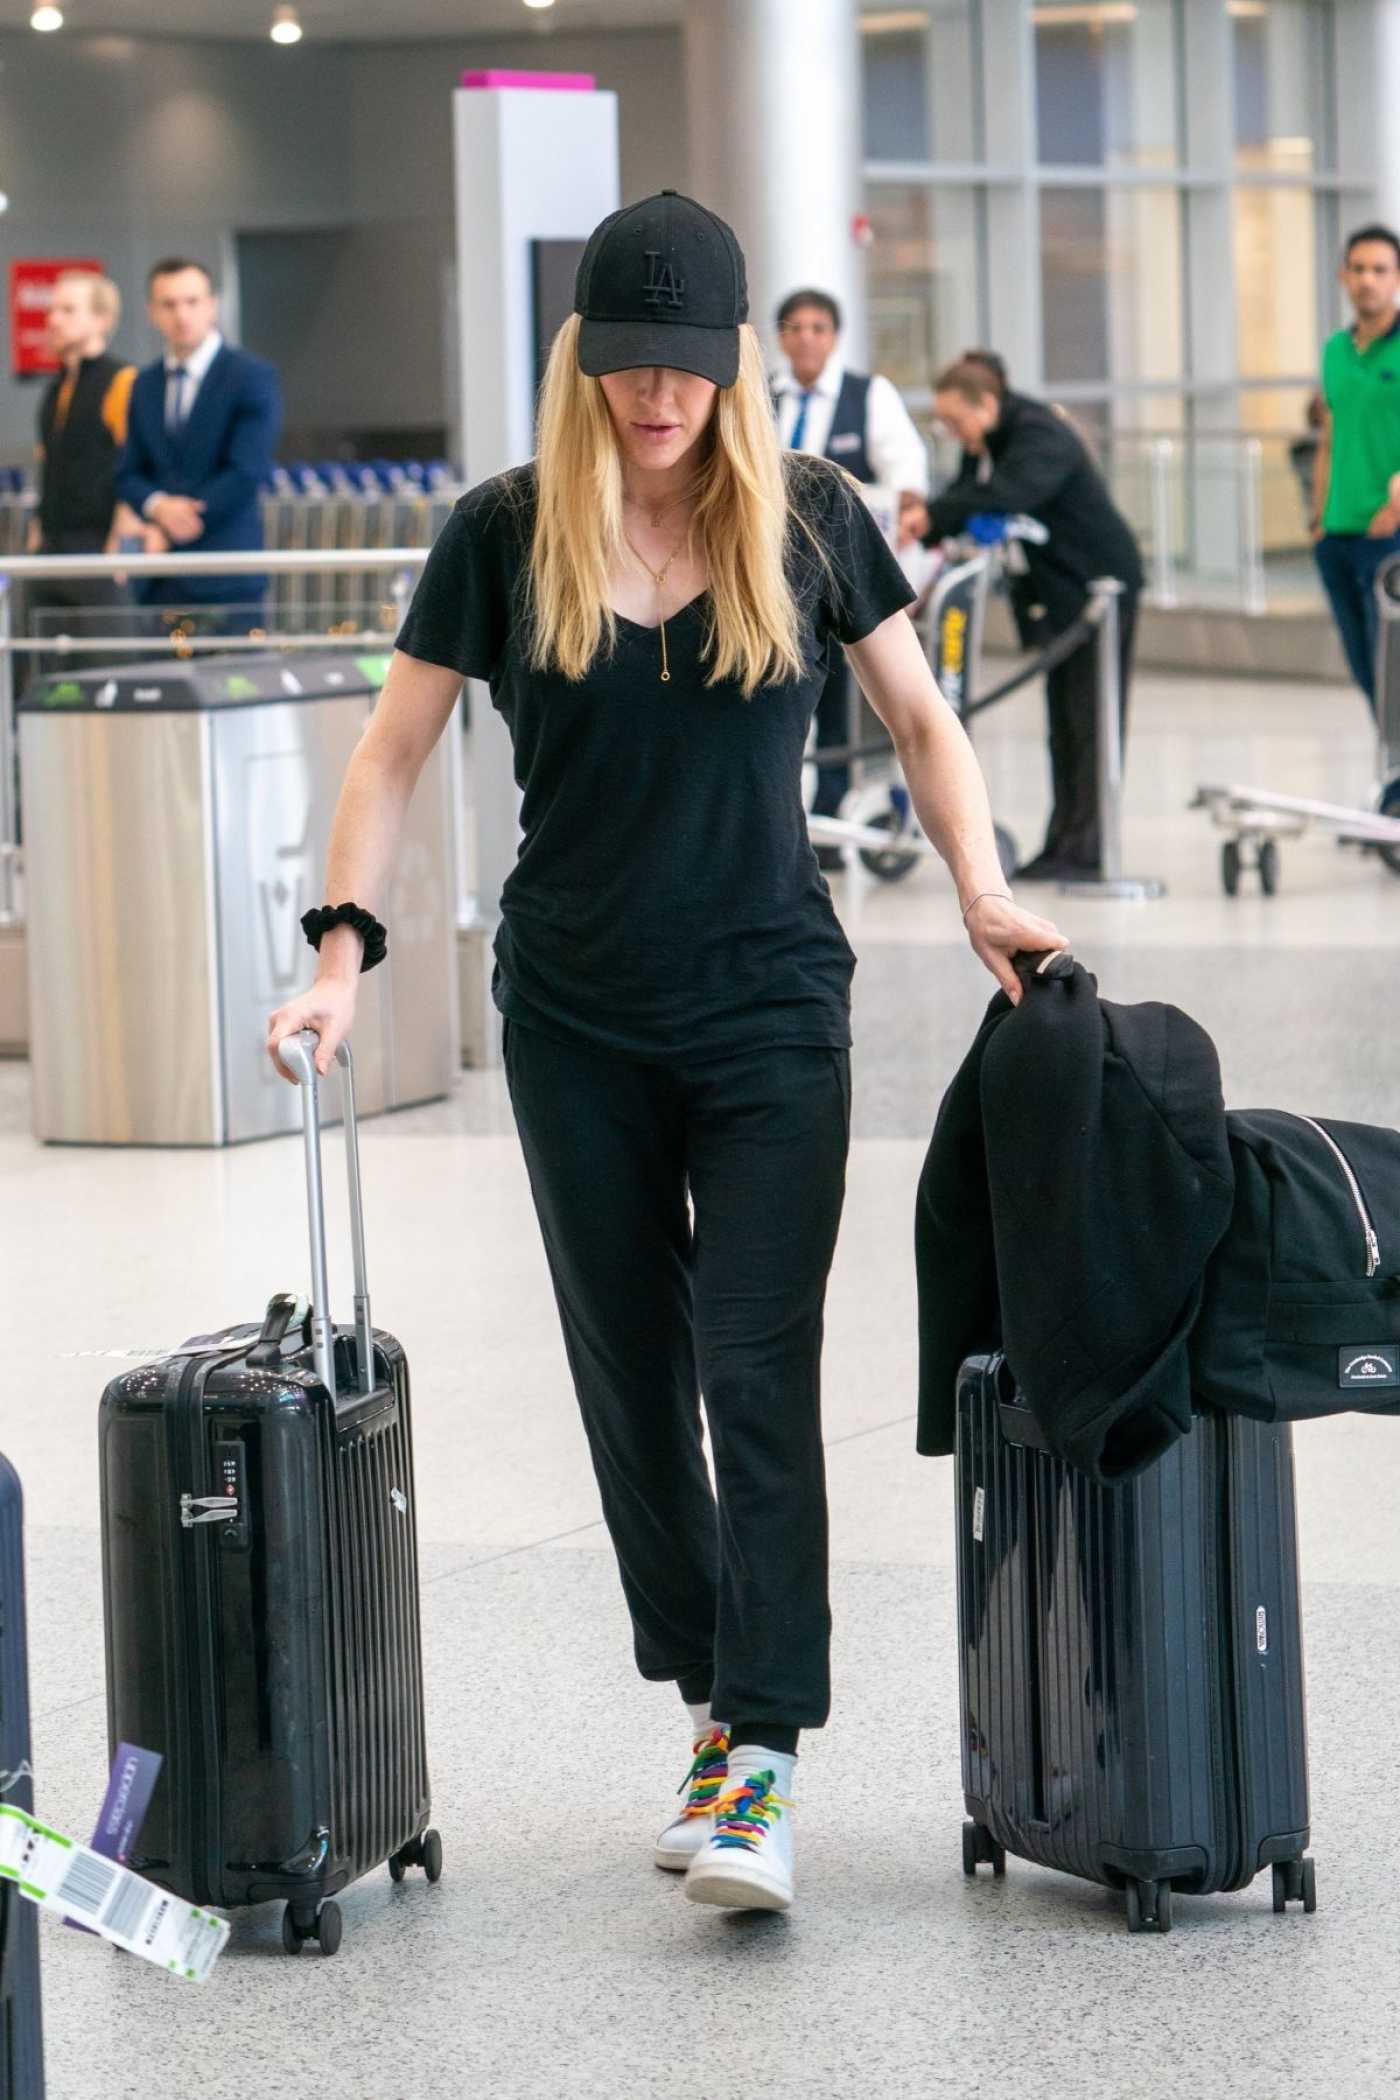 Ellie Goulding in a Black Cap Arrives at Miami International Airport in Miami 12/29/2019